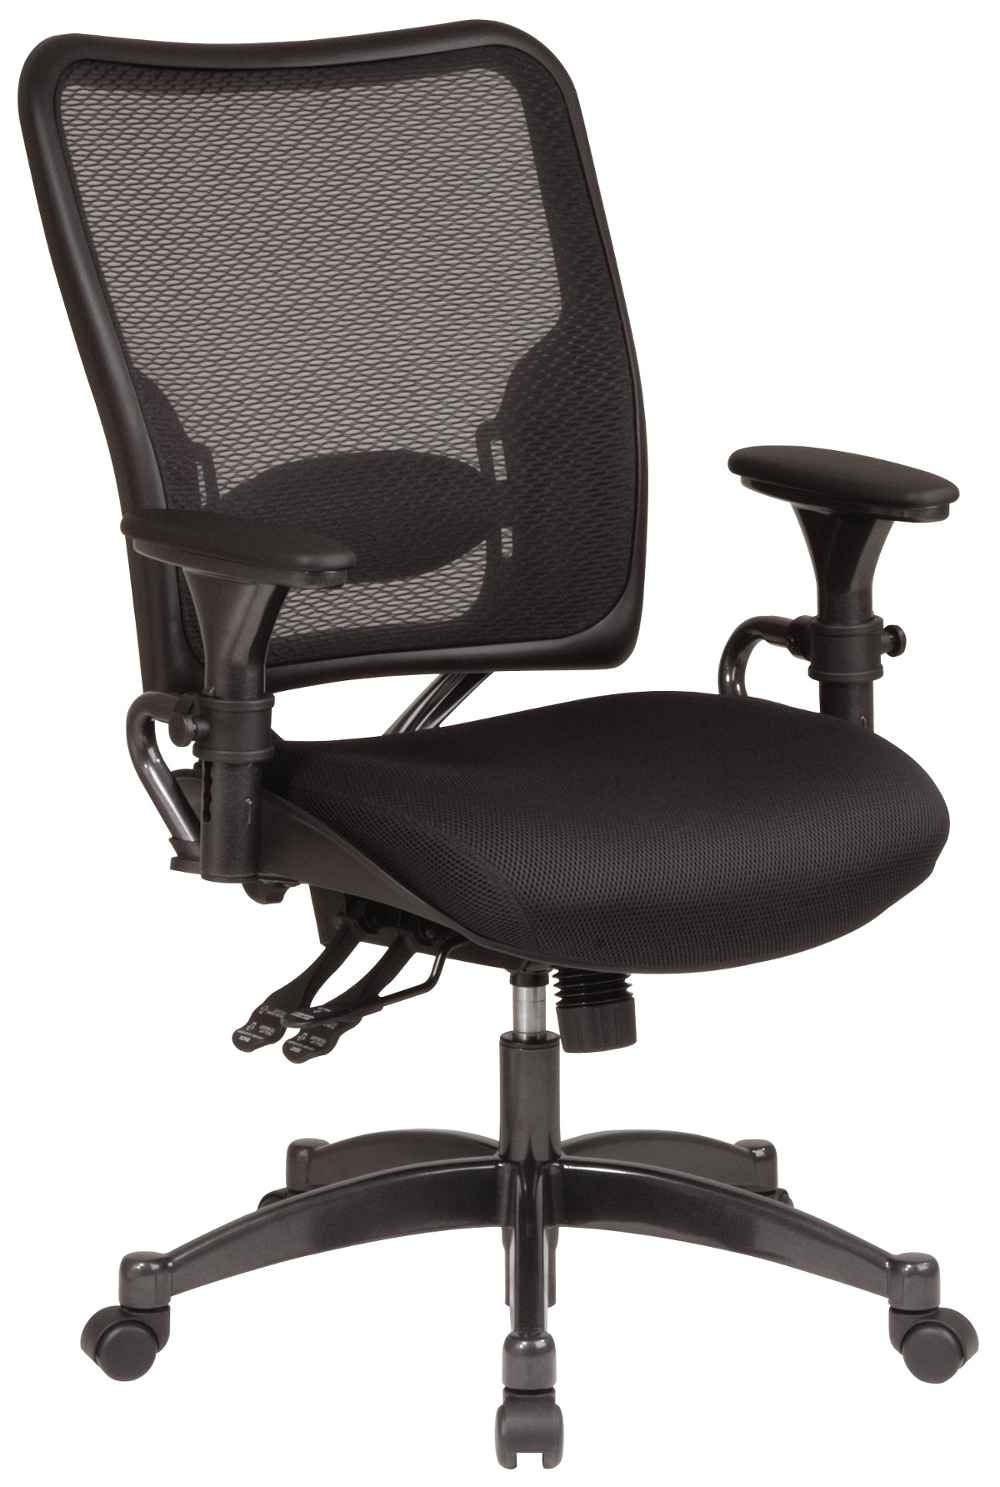 Professional and Functional Office Desk Chair